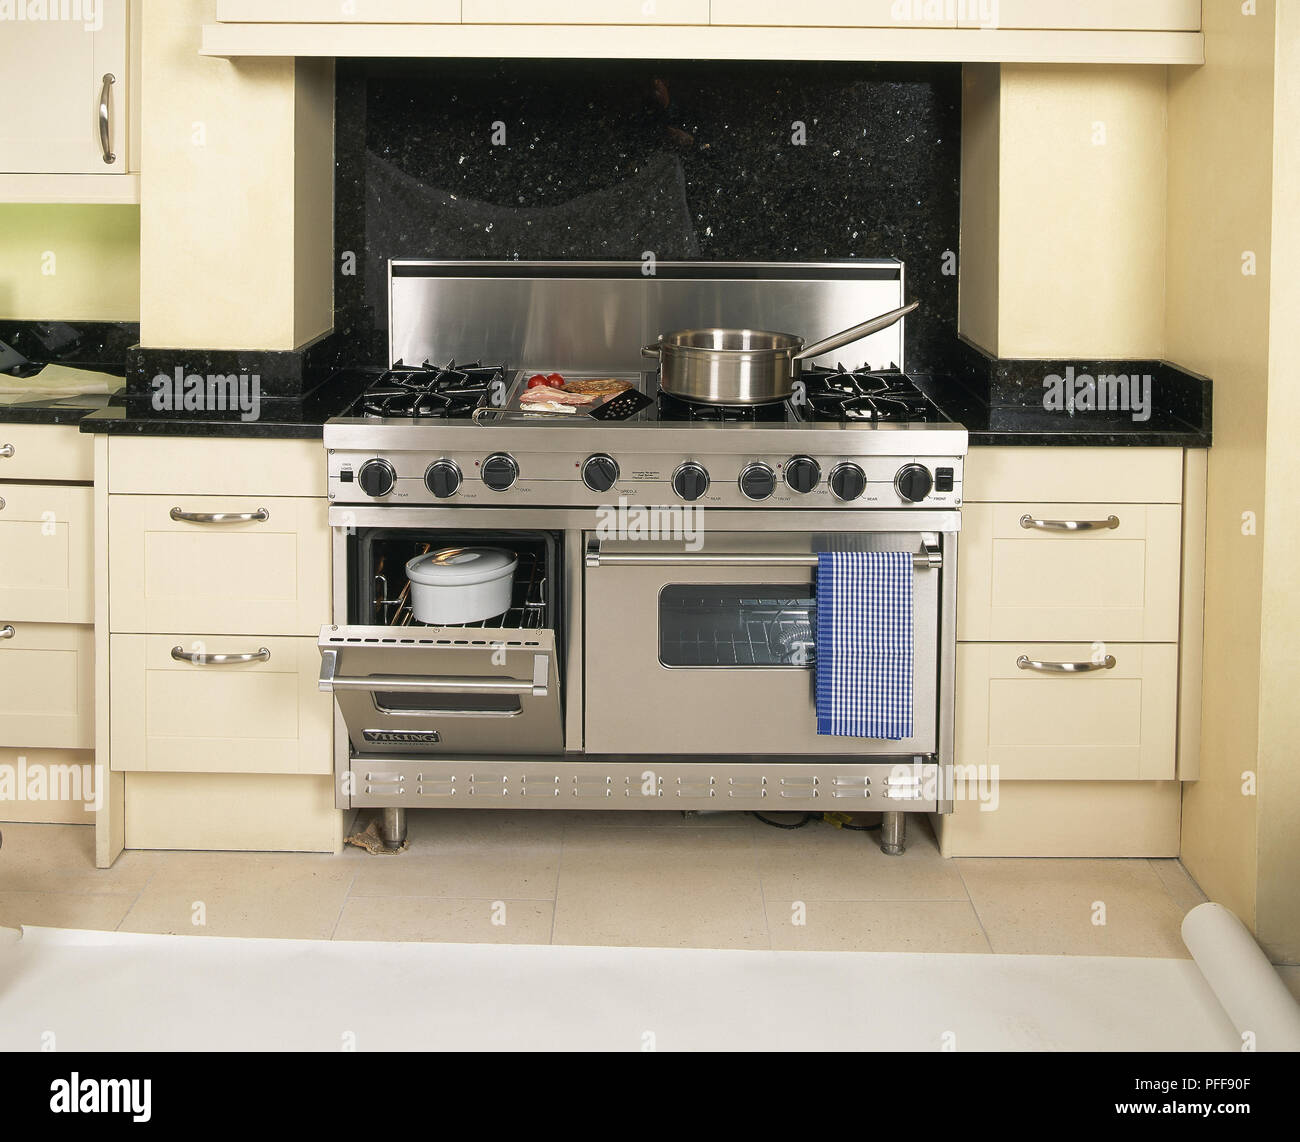 Stainless Steel Splashback Freestanding Double Width Oven With Stainless Steel Splashback And